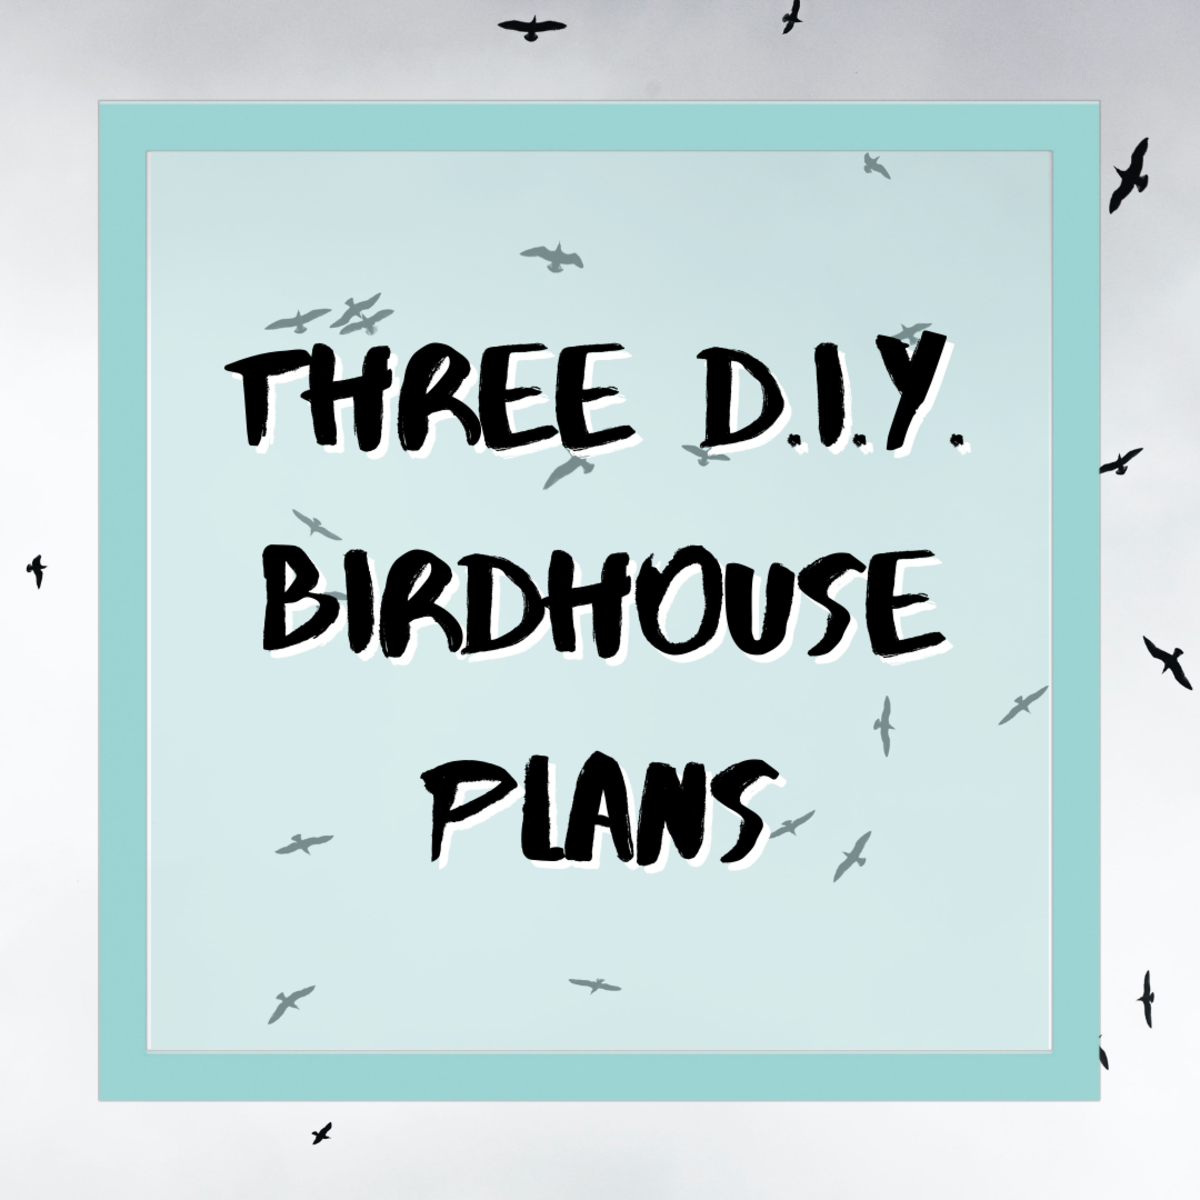 These bird house plans will help you create three different DIY birdhouses!